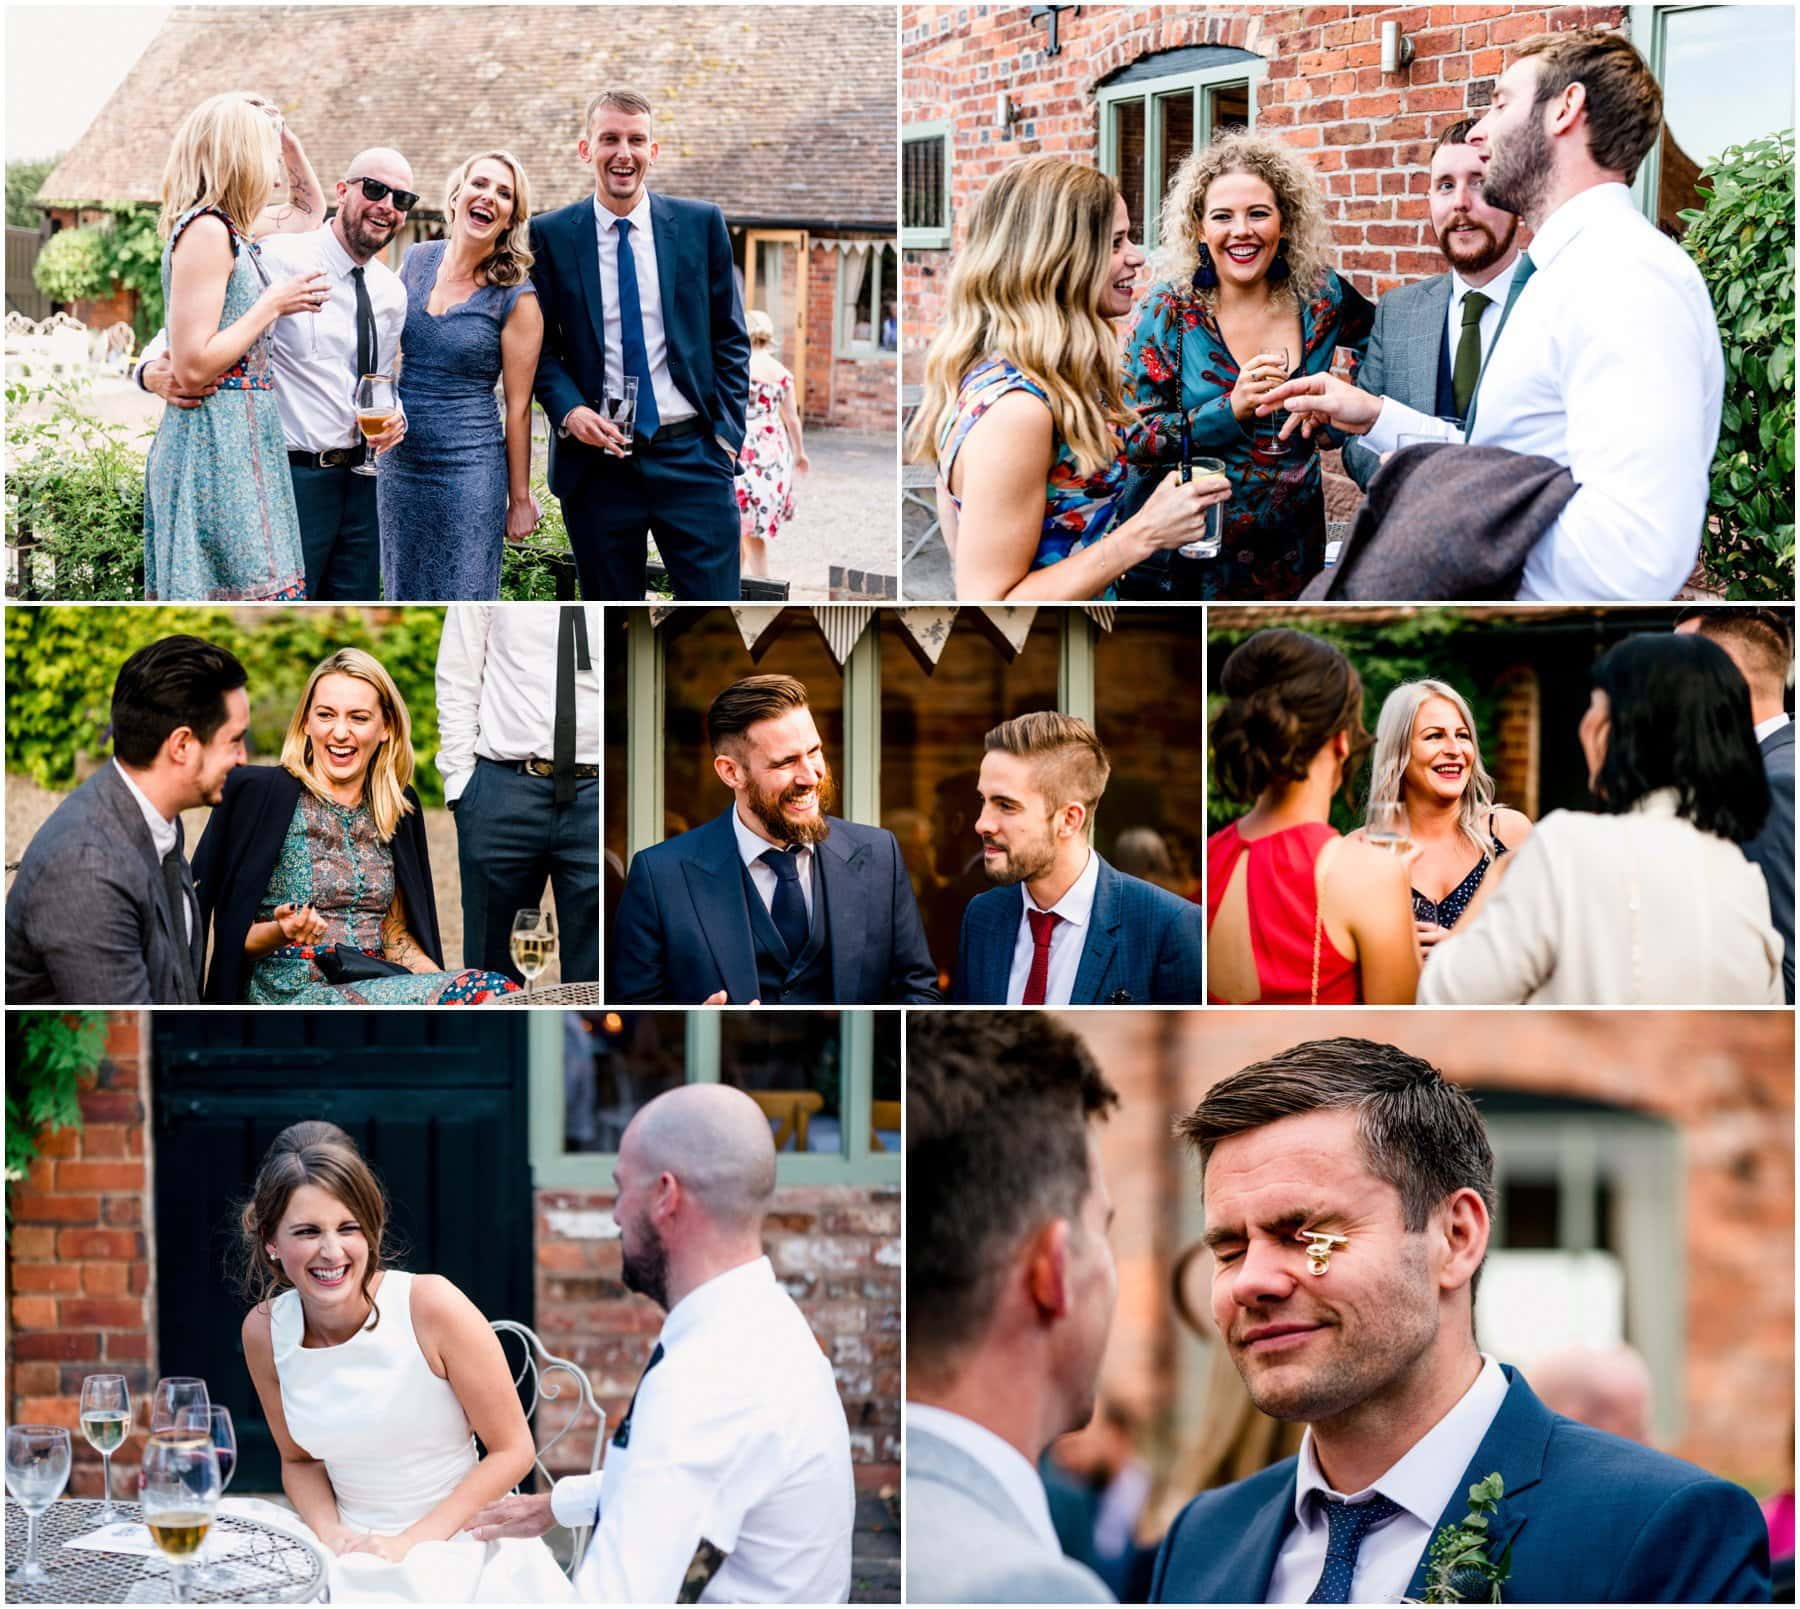 Curradine Barns Wedding Photos by Lisa Carpenter Photography, West Midlands Wedding Photographer